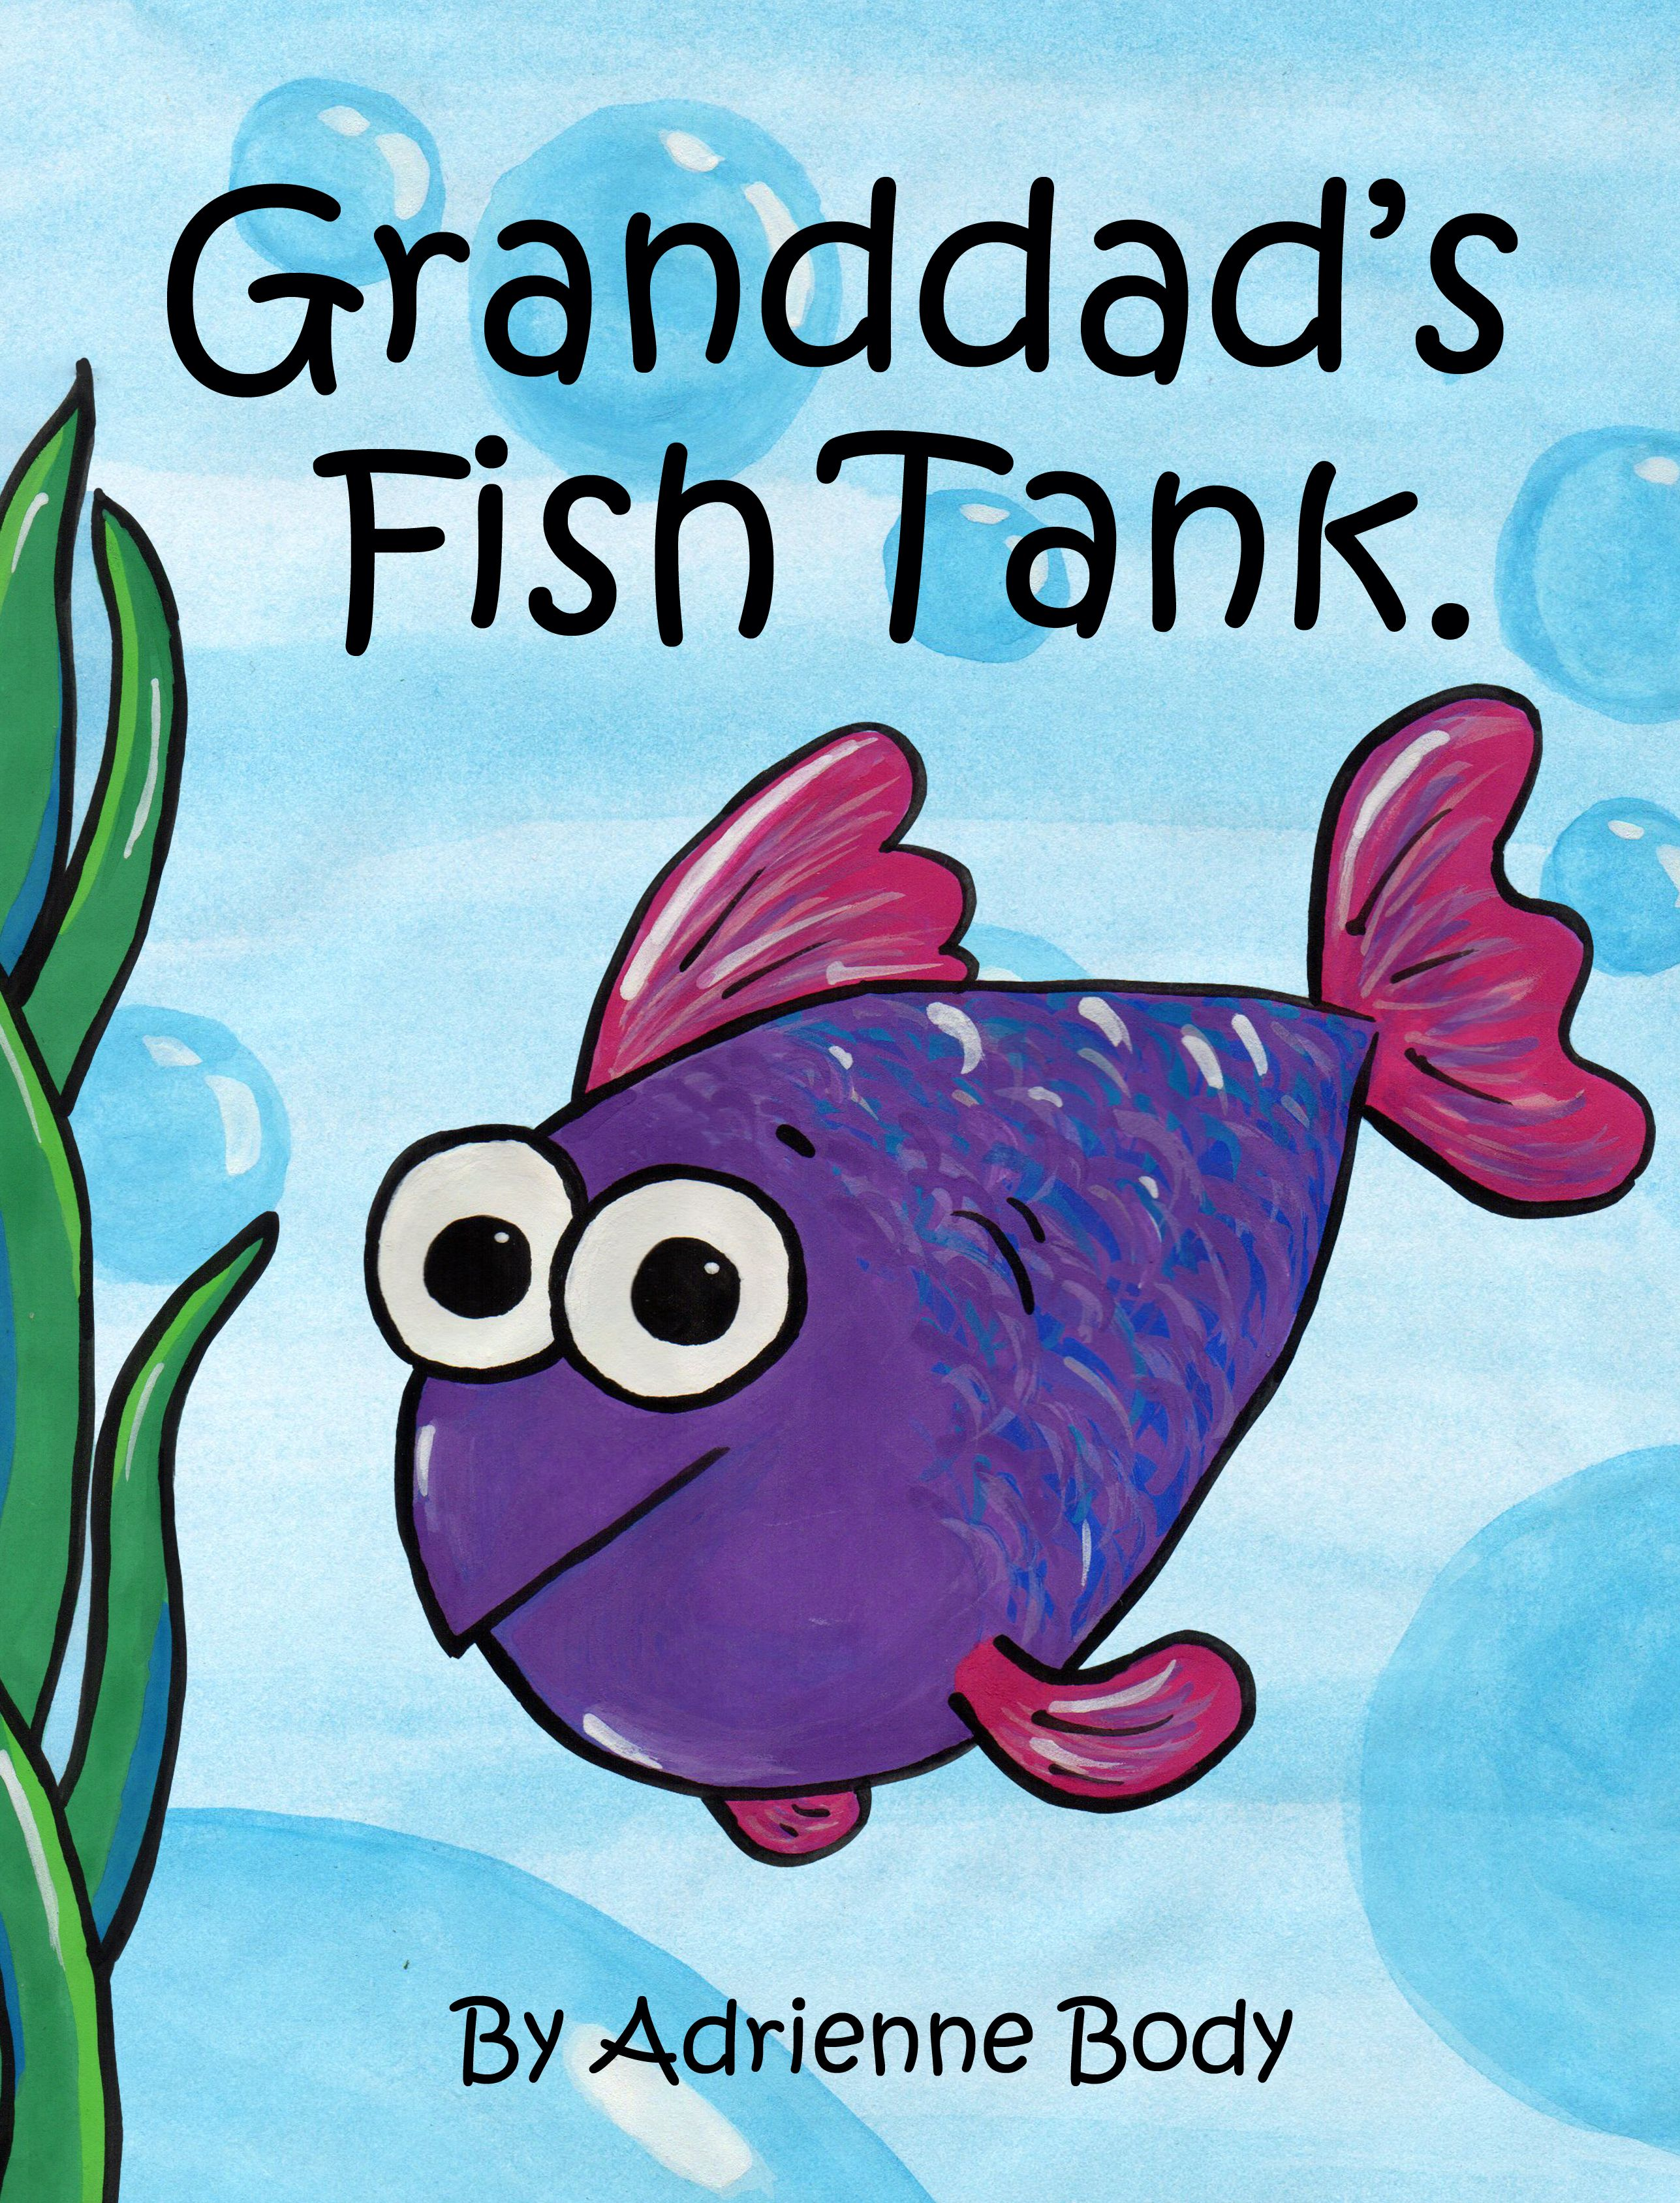 Granddads fish tank childrens book about aquarium fish and other